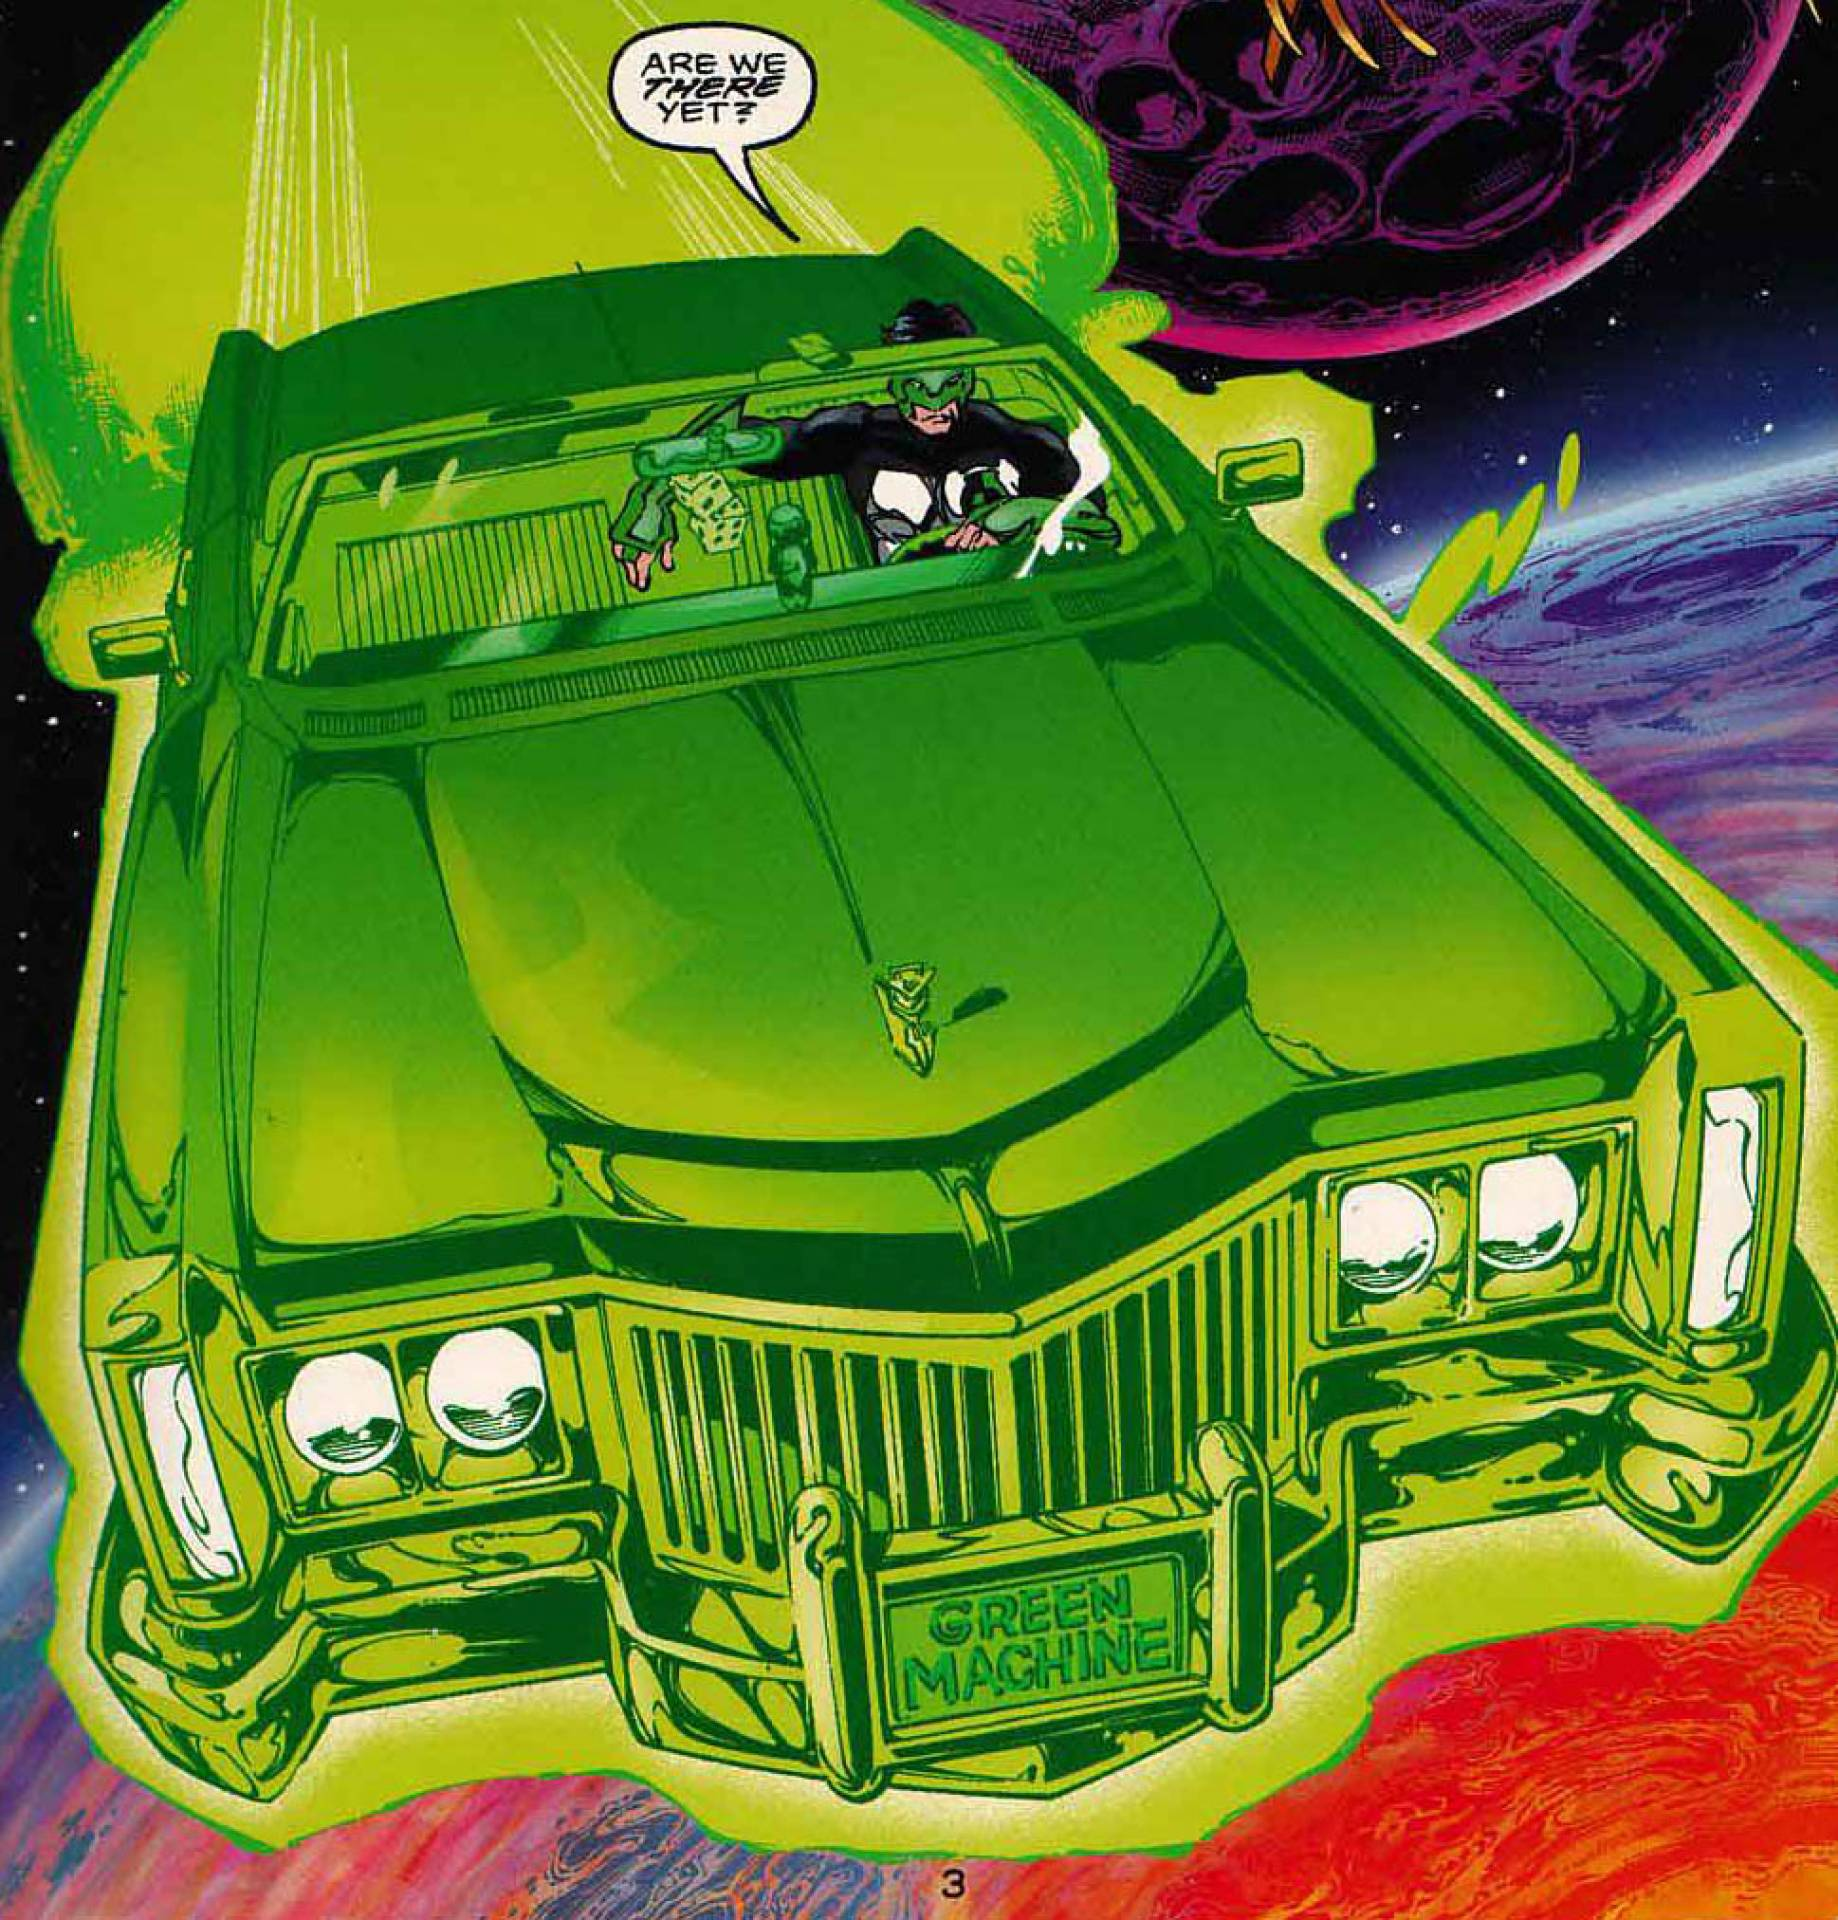 1450618-green_lantern_the_new_corps_1_page_05_image_0001b